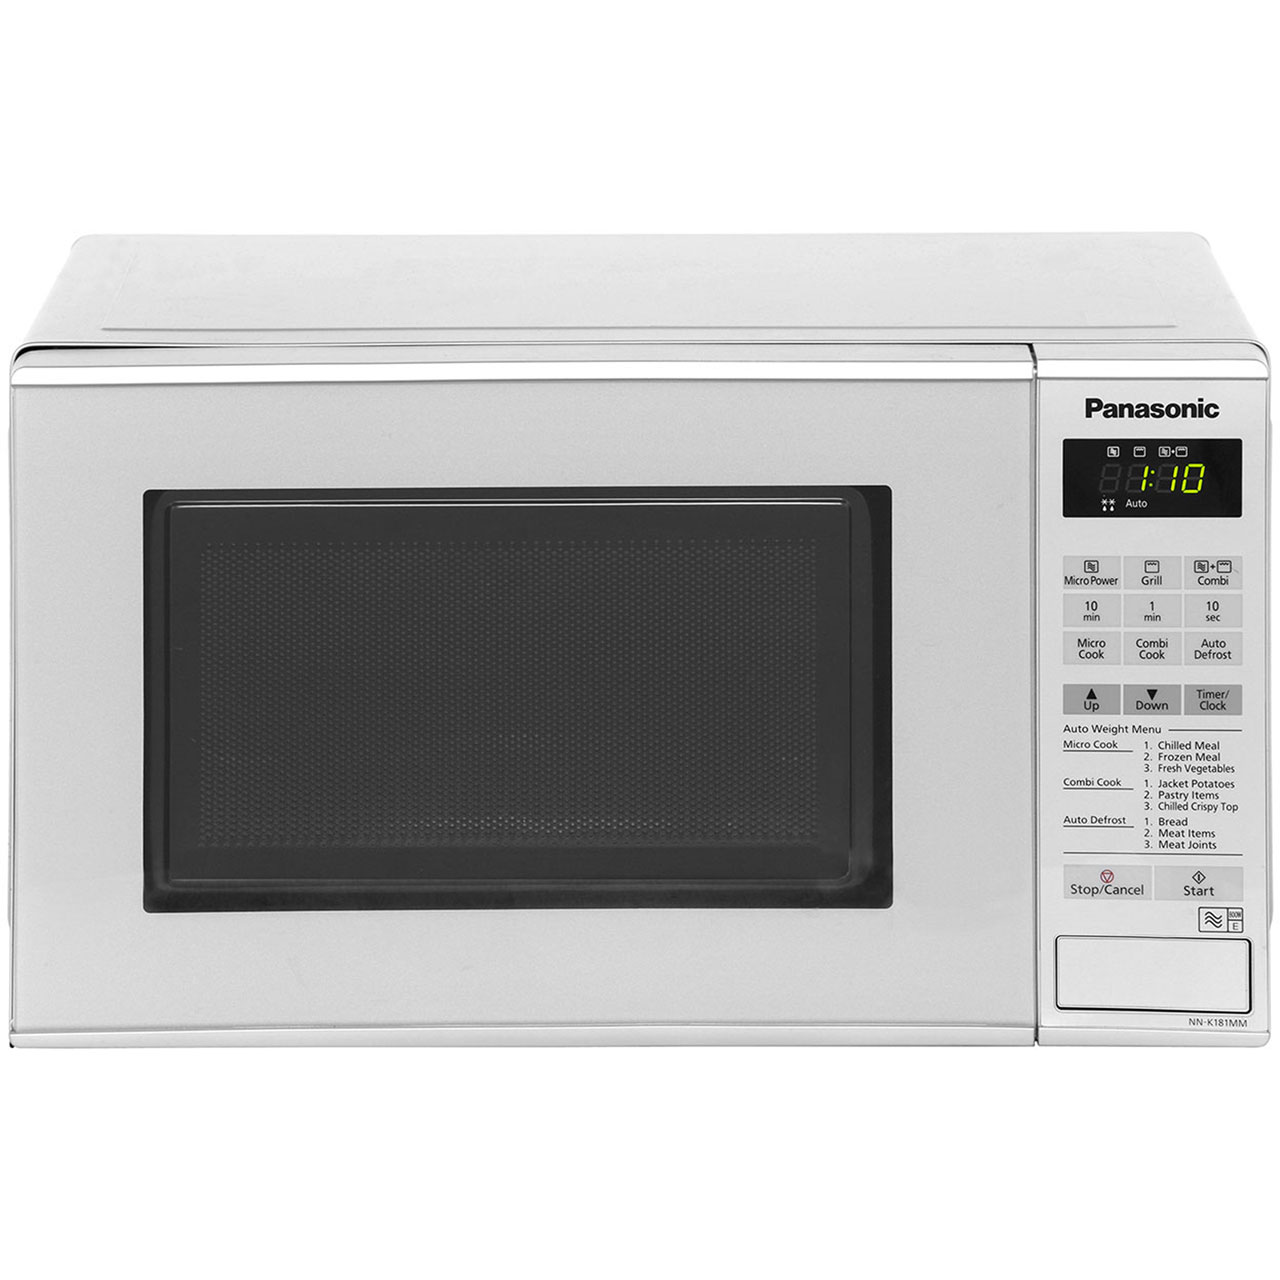 Panasonic NN-K181MMBPQ 20 Litre Microwave With Grill - Silver